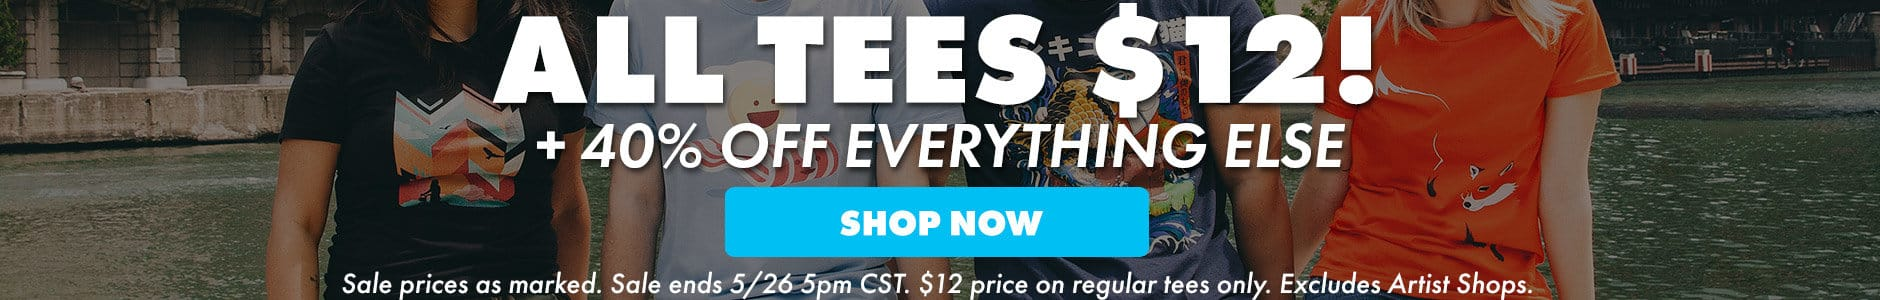 All tees $12! + 40% off everything else! Shop now. Sale prices as marked. Sale ends 5/26 5PM CST. $12 price on regular tees only. Excludes Artist Shops.